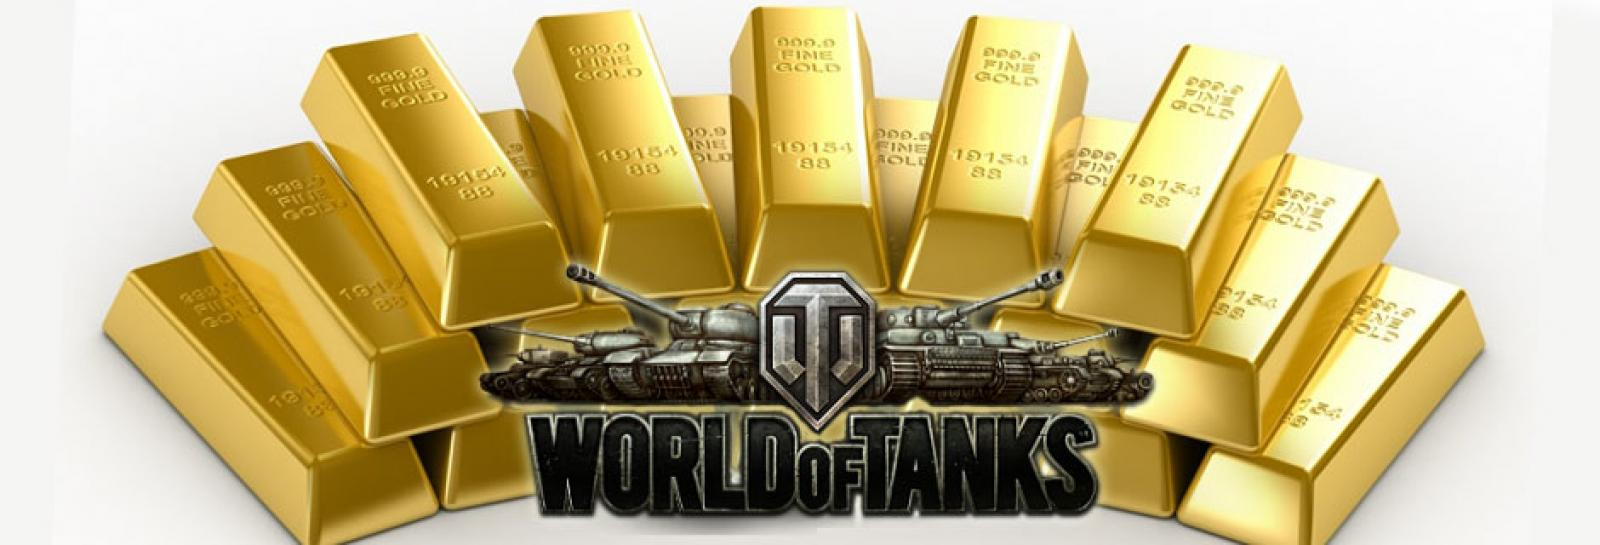 Online updating World of Tanks 5000 gold and real gifts